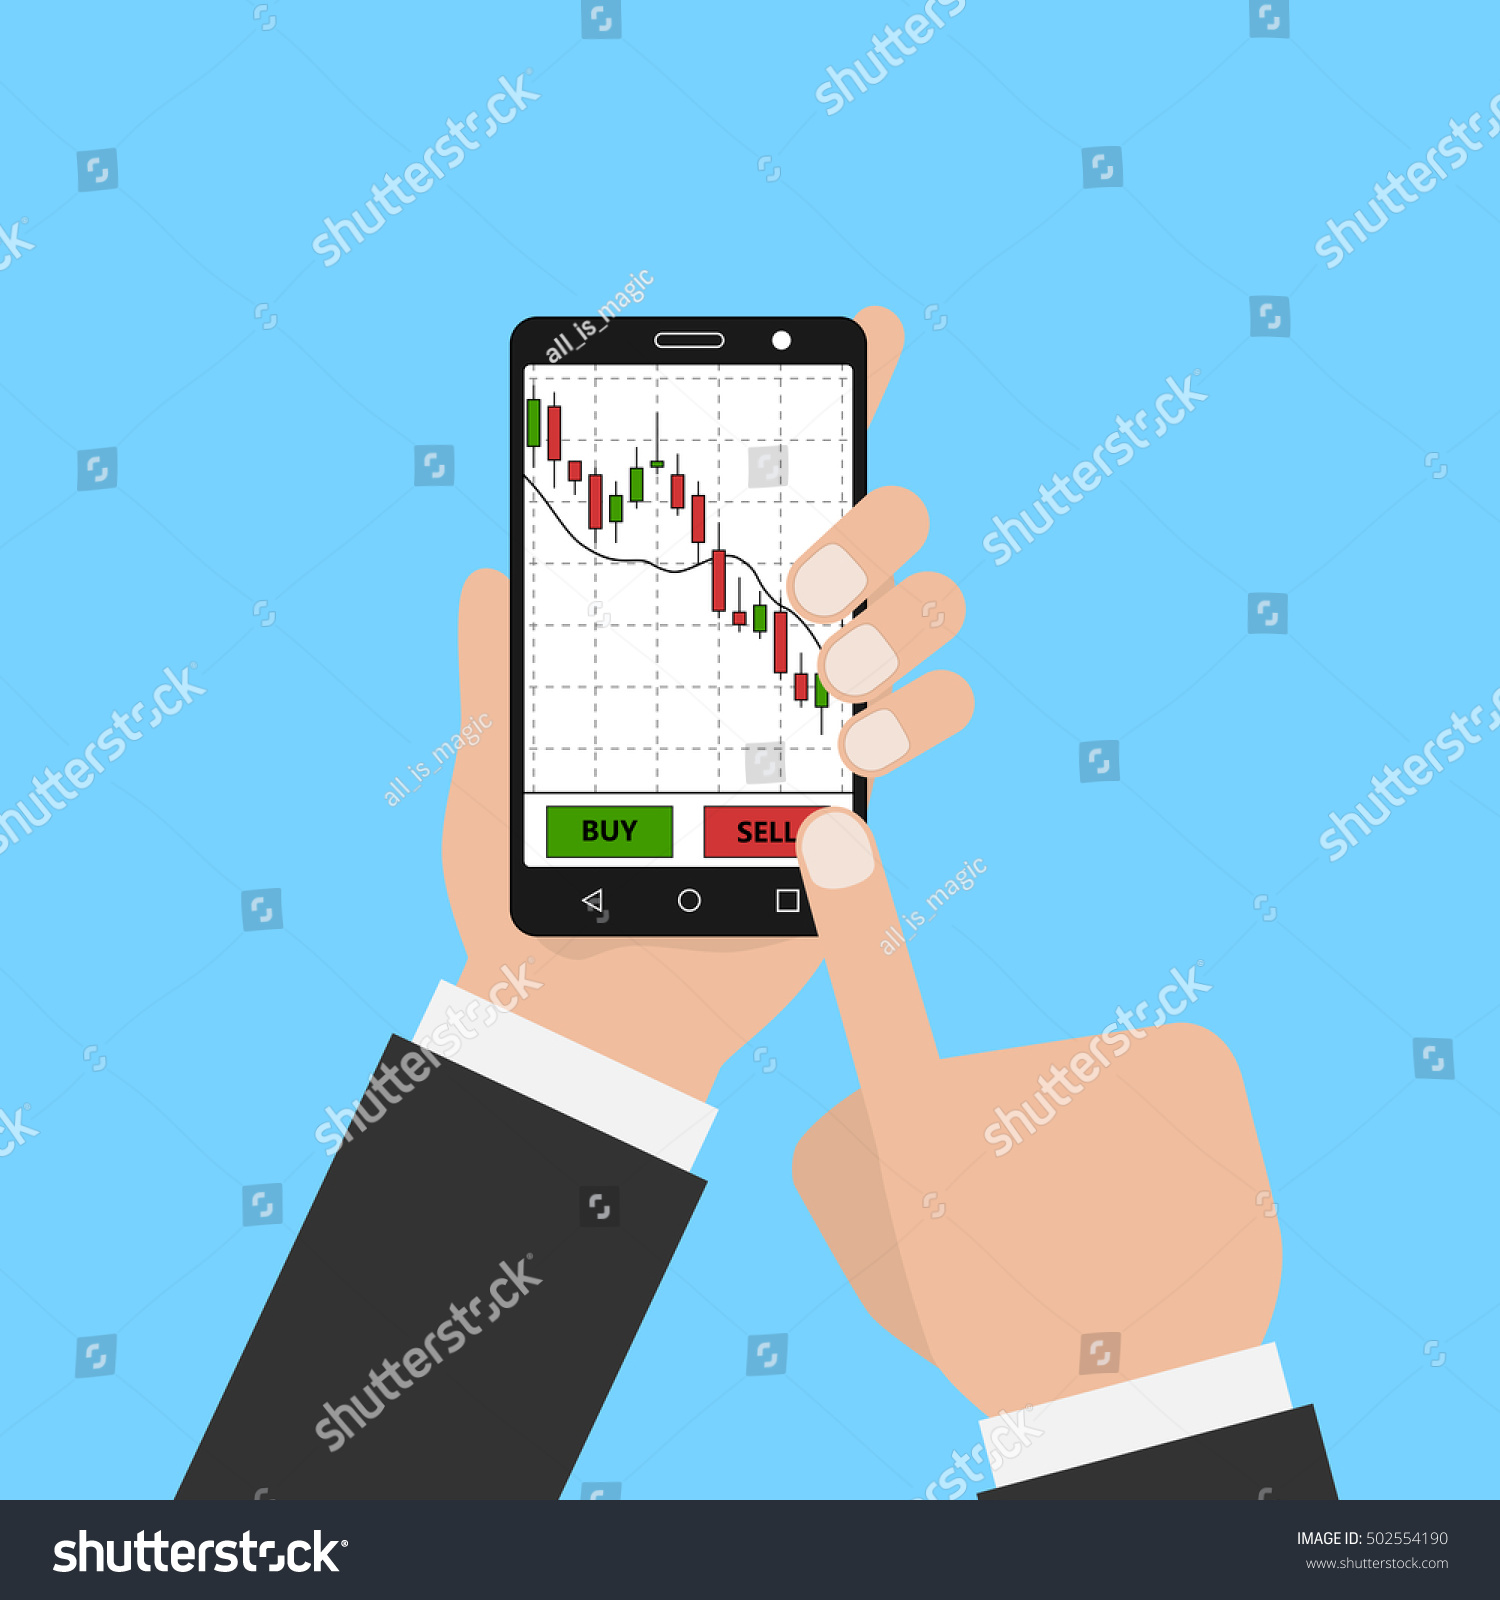 Tag forex page no81 the best binary options robot list stratageme forex stratageme forex fandeluxe Image collections